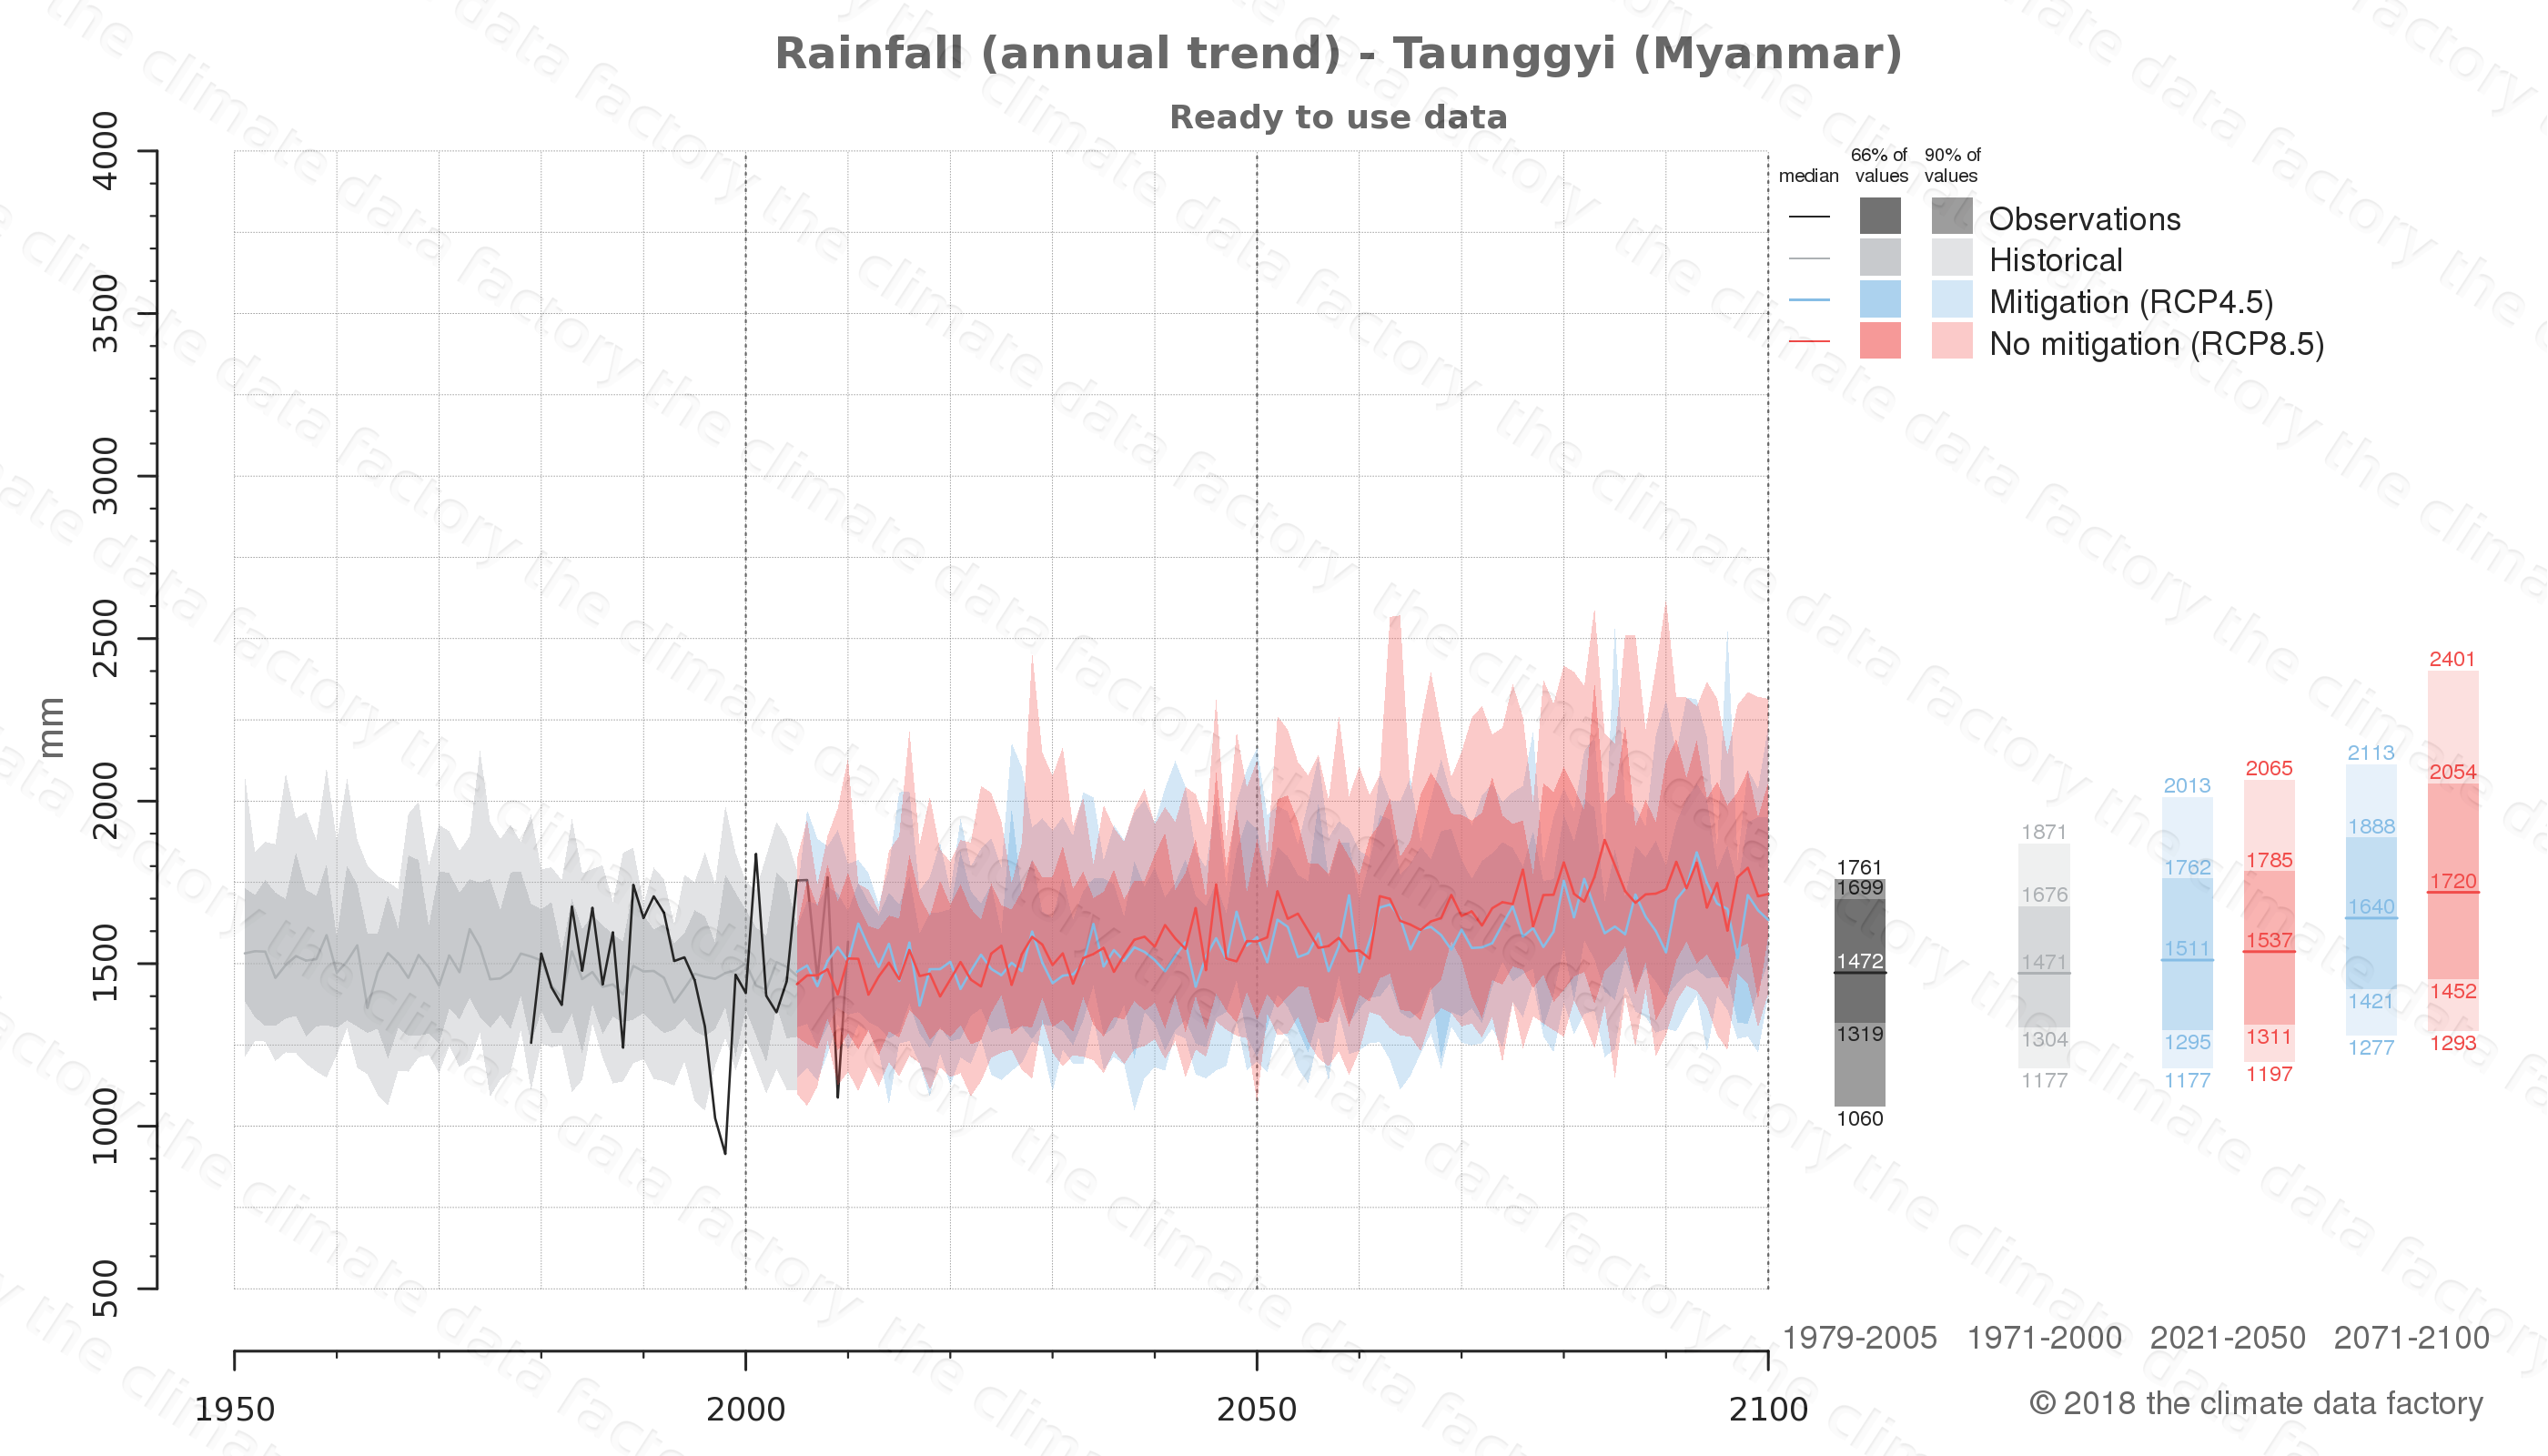 climate change data policy adaptation climate graph city data rainfall taunggyi myanmar